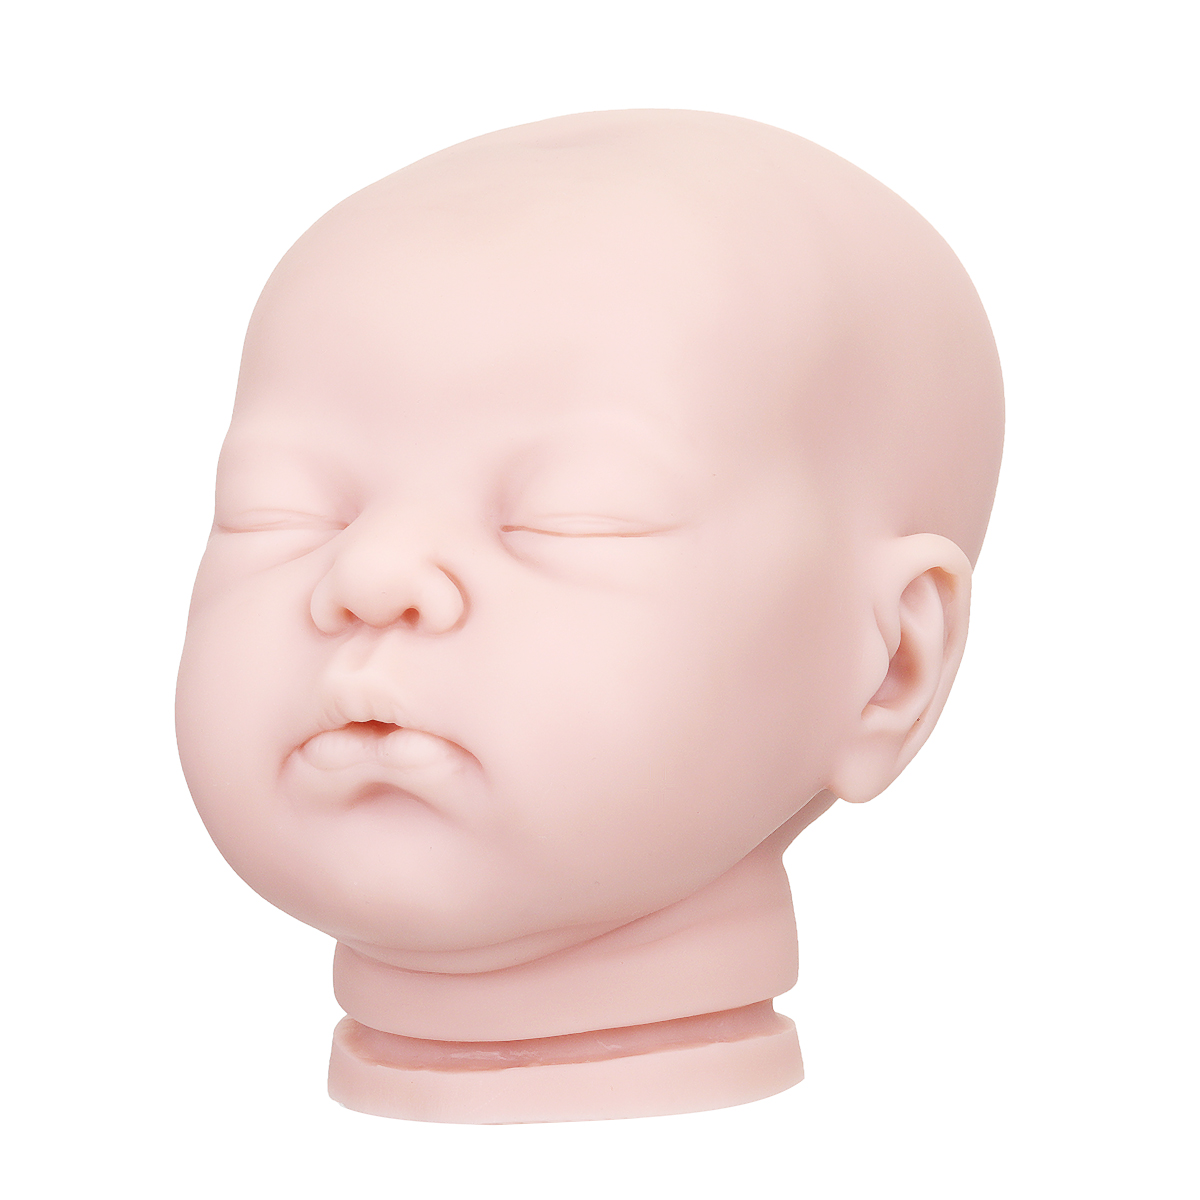 Vinyl Silicone DIY Reborn Baby Doll Accessories Lifelike Toddler Gifts No Body